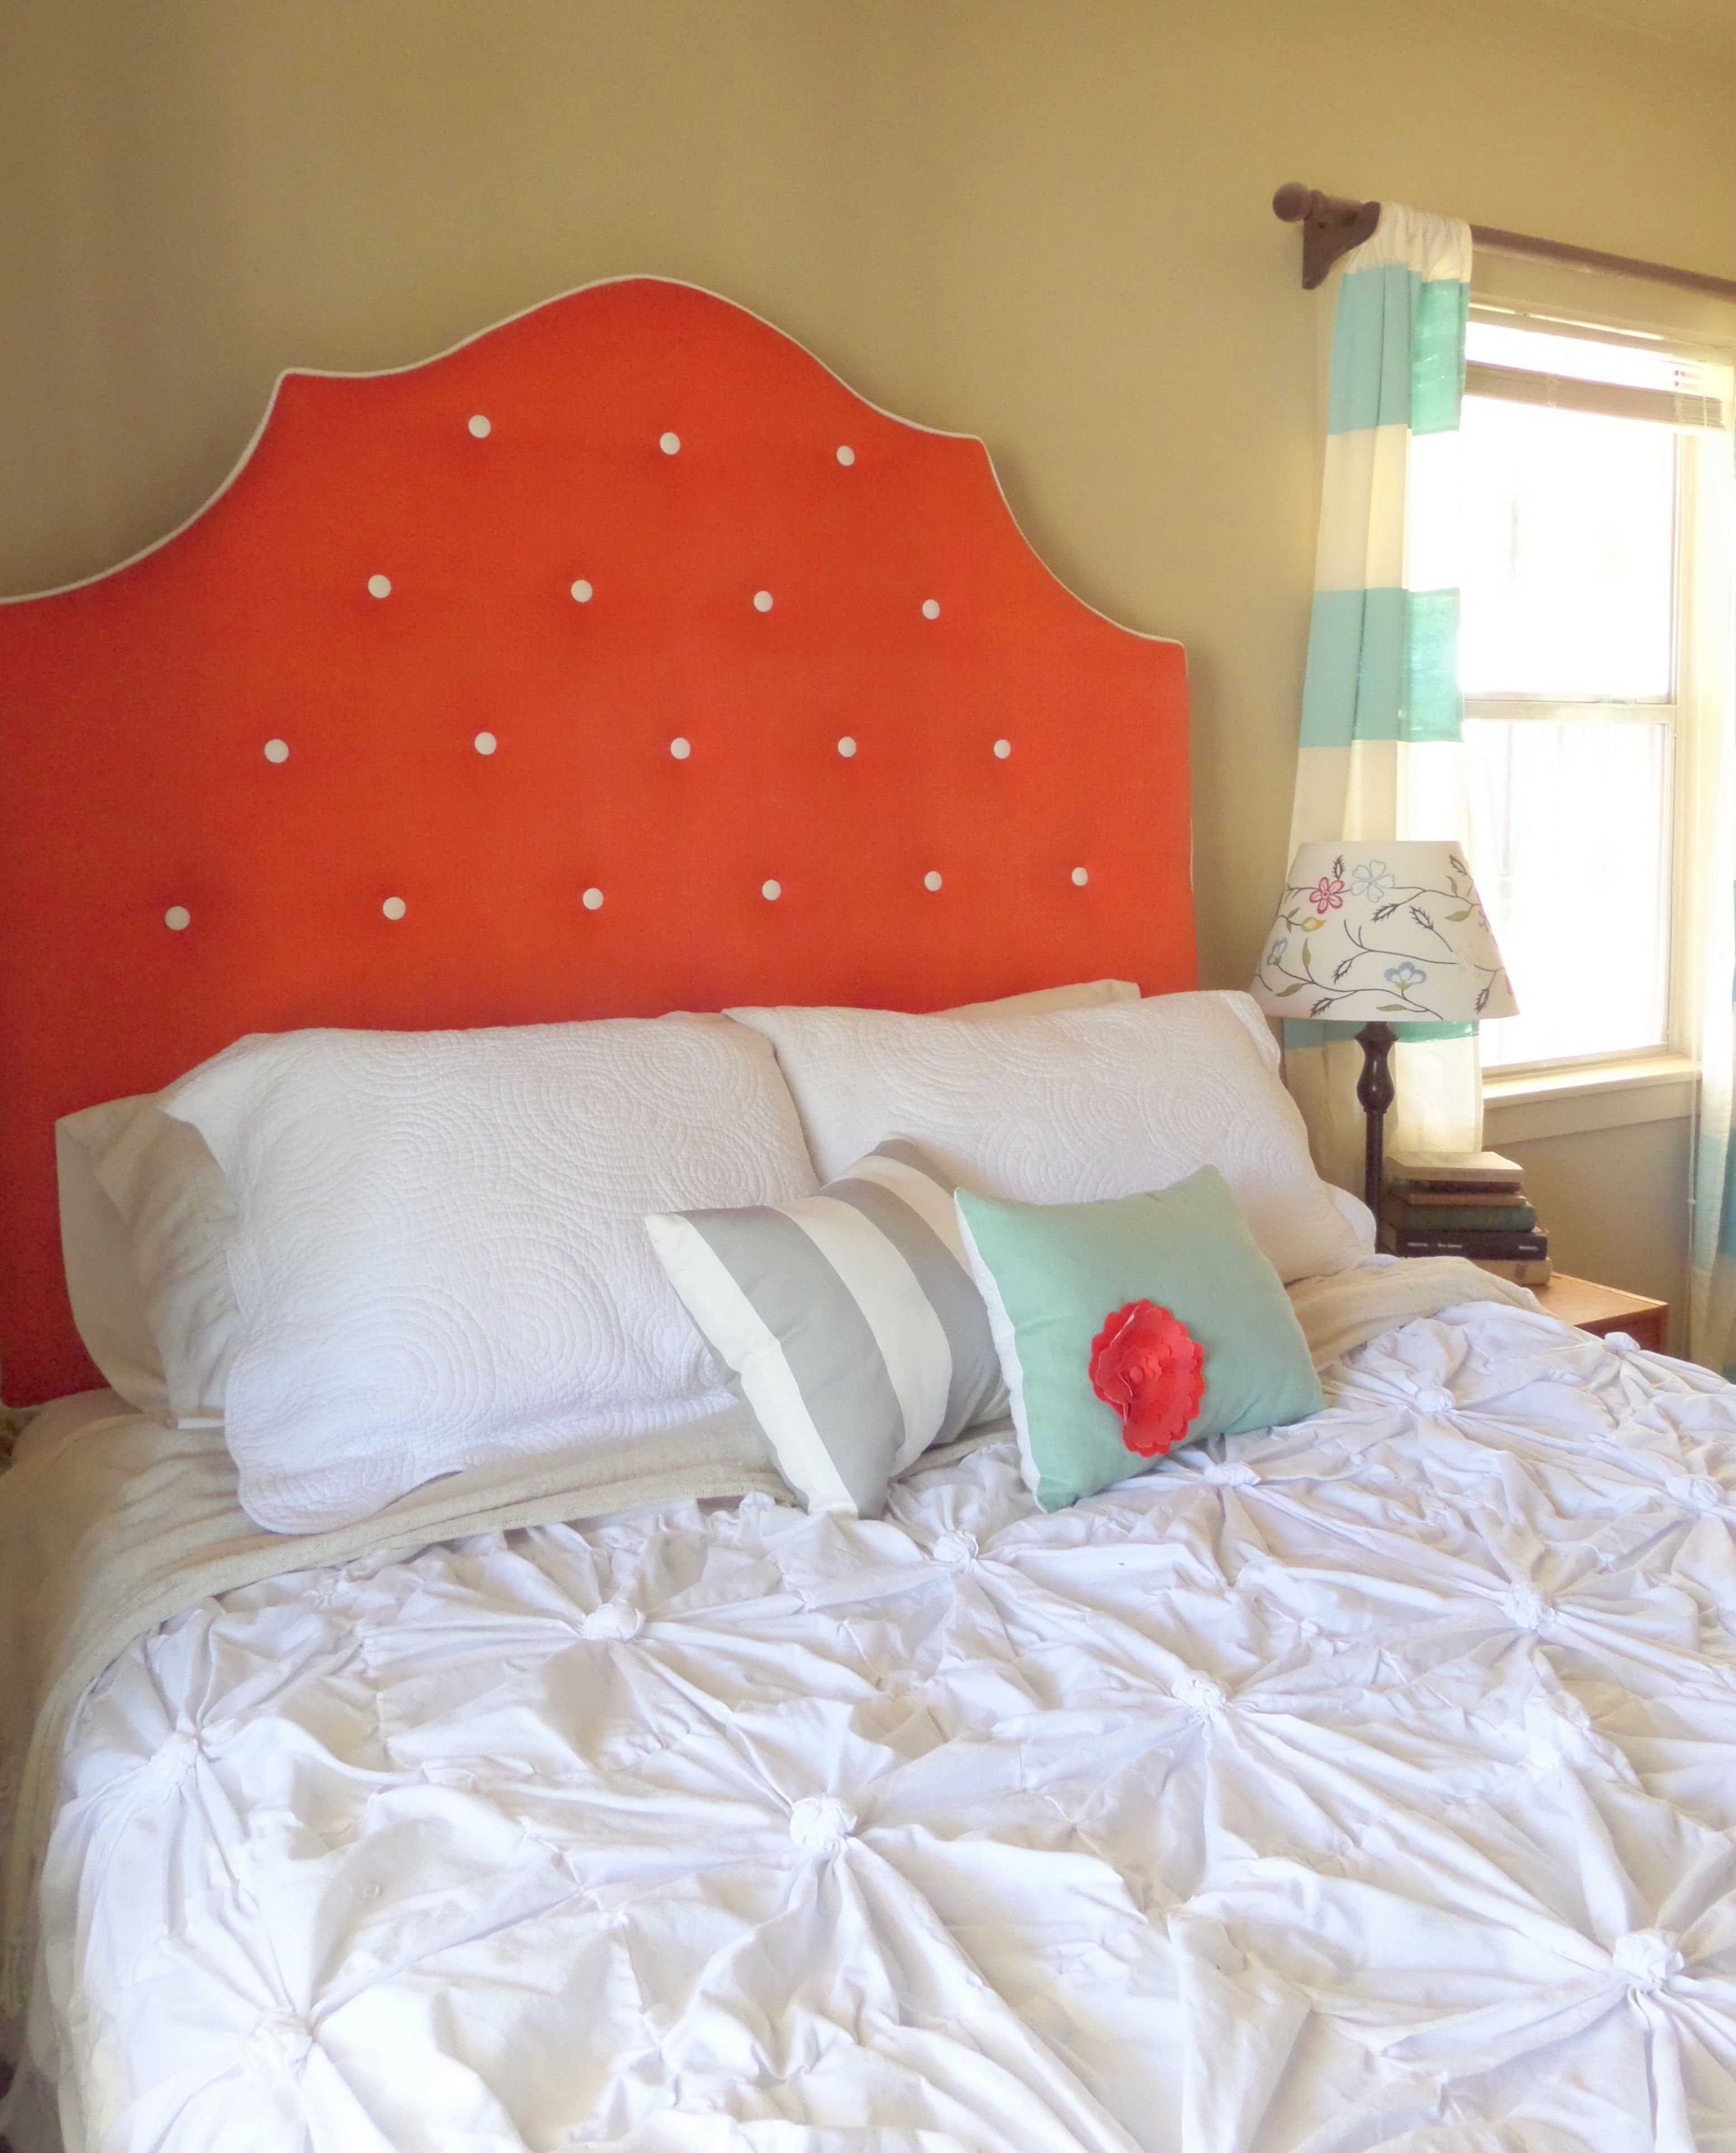 Queen sized extra tall orange coral tufted upholstered